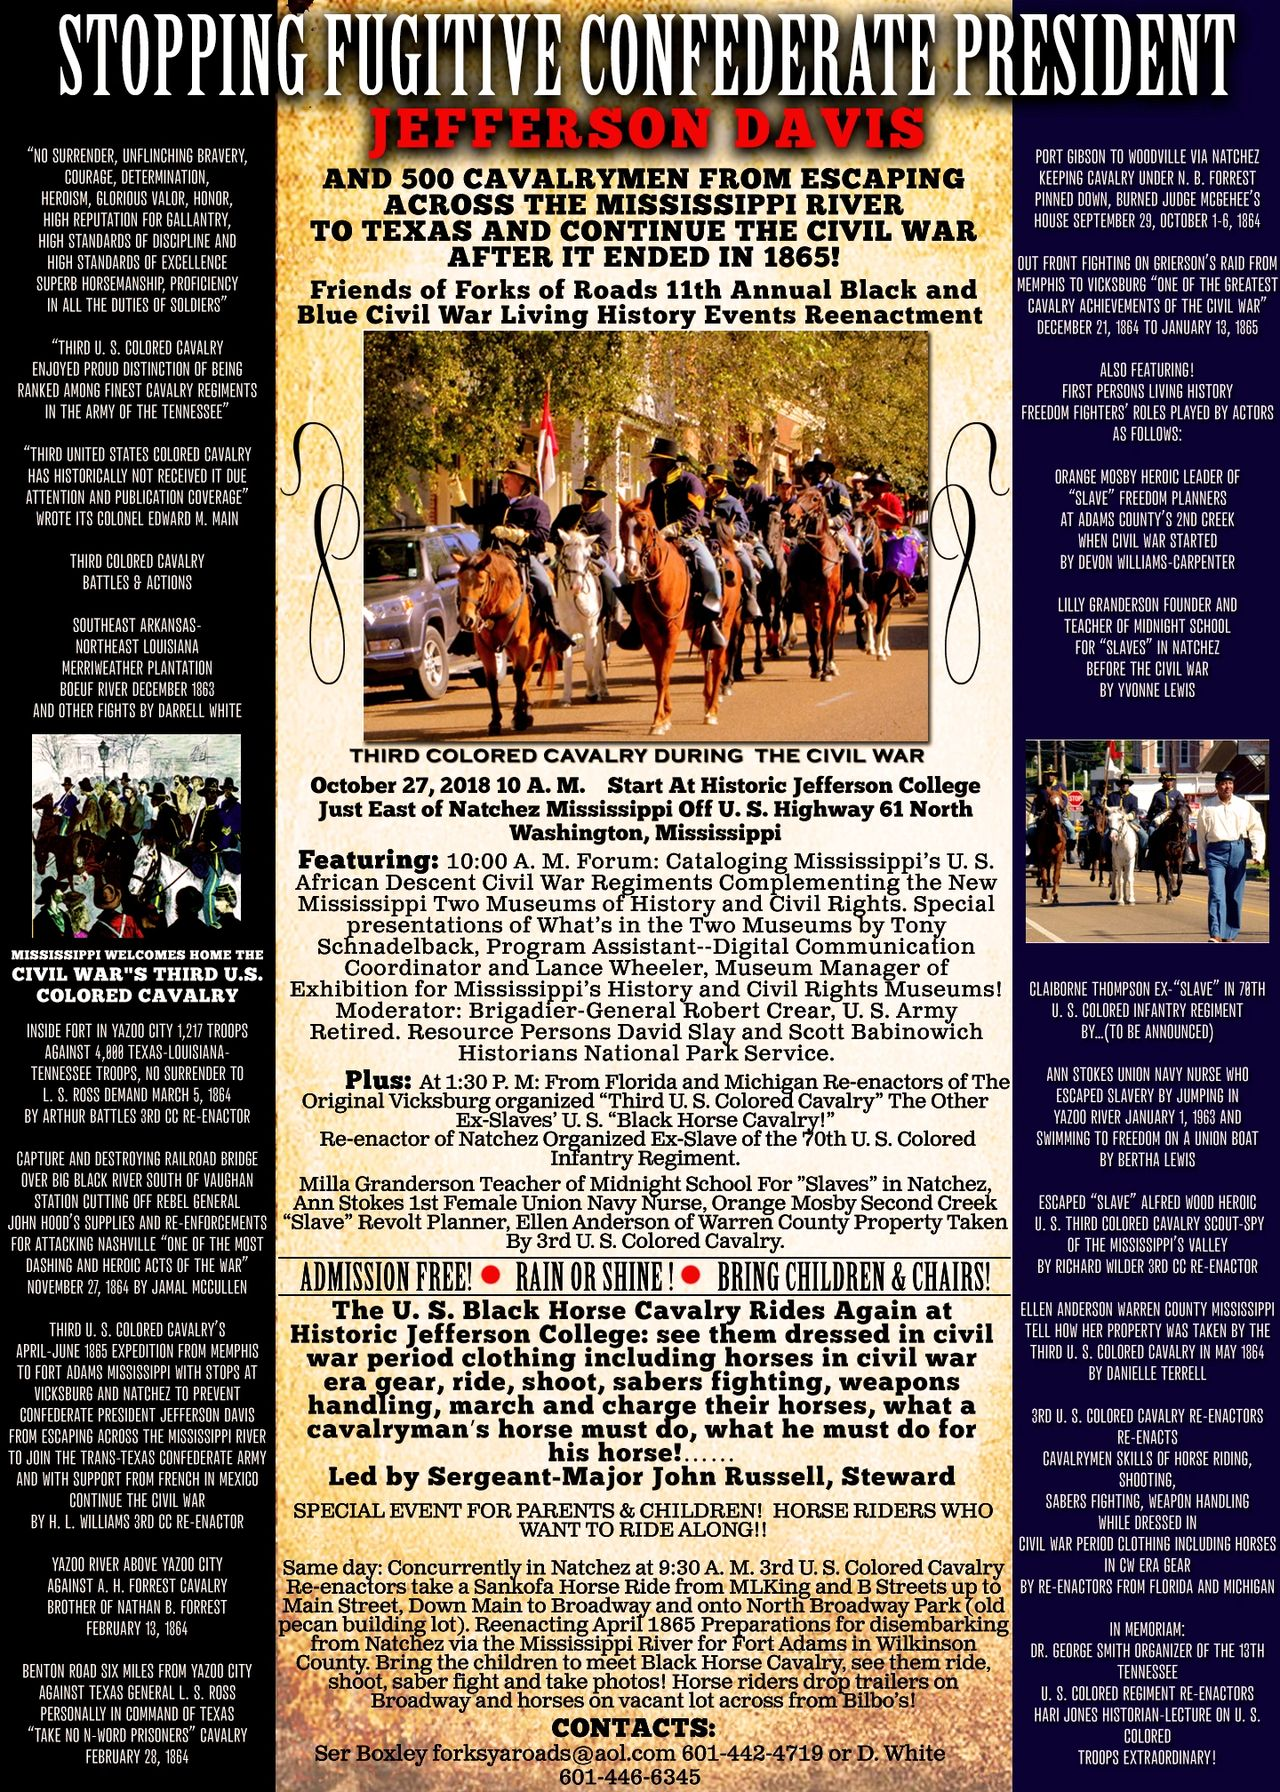 This Year's Black & Blue Civil War Re-enactment Info Poster